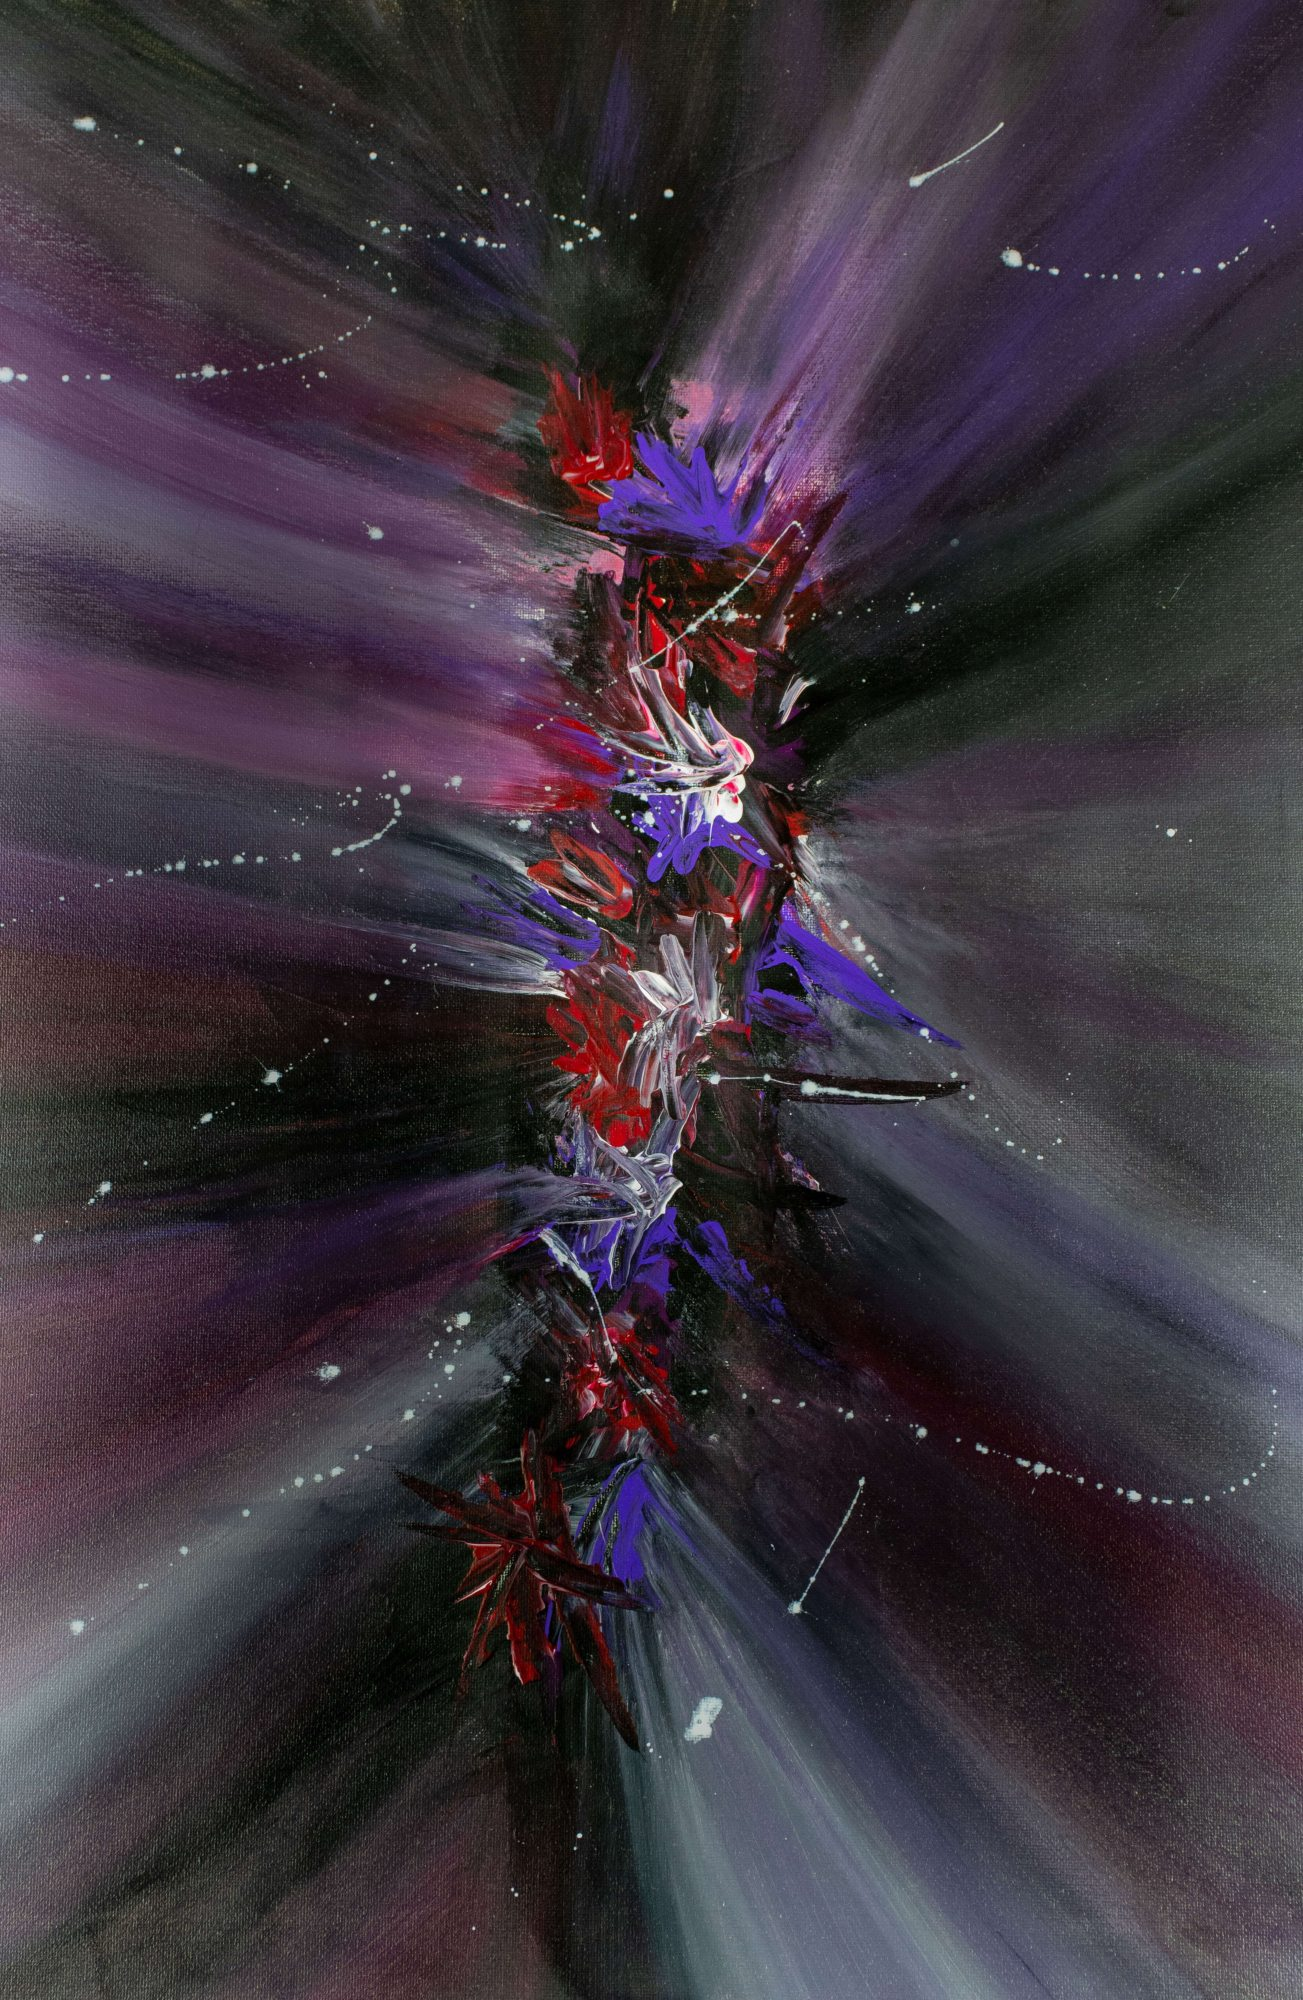 Violet flower burst - abstract art - violet - purple - red - white - black -Size 18 in x 24 in